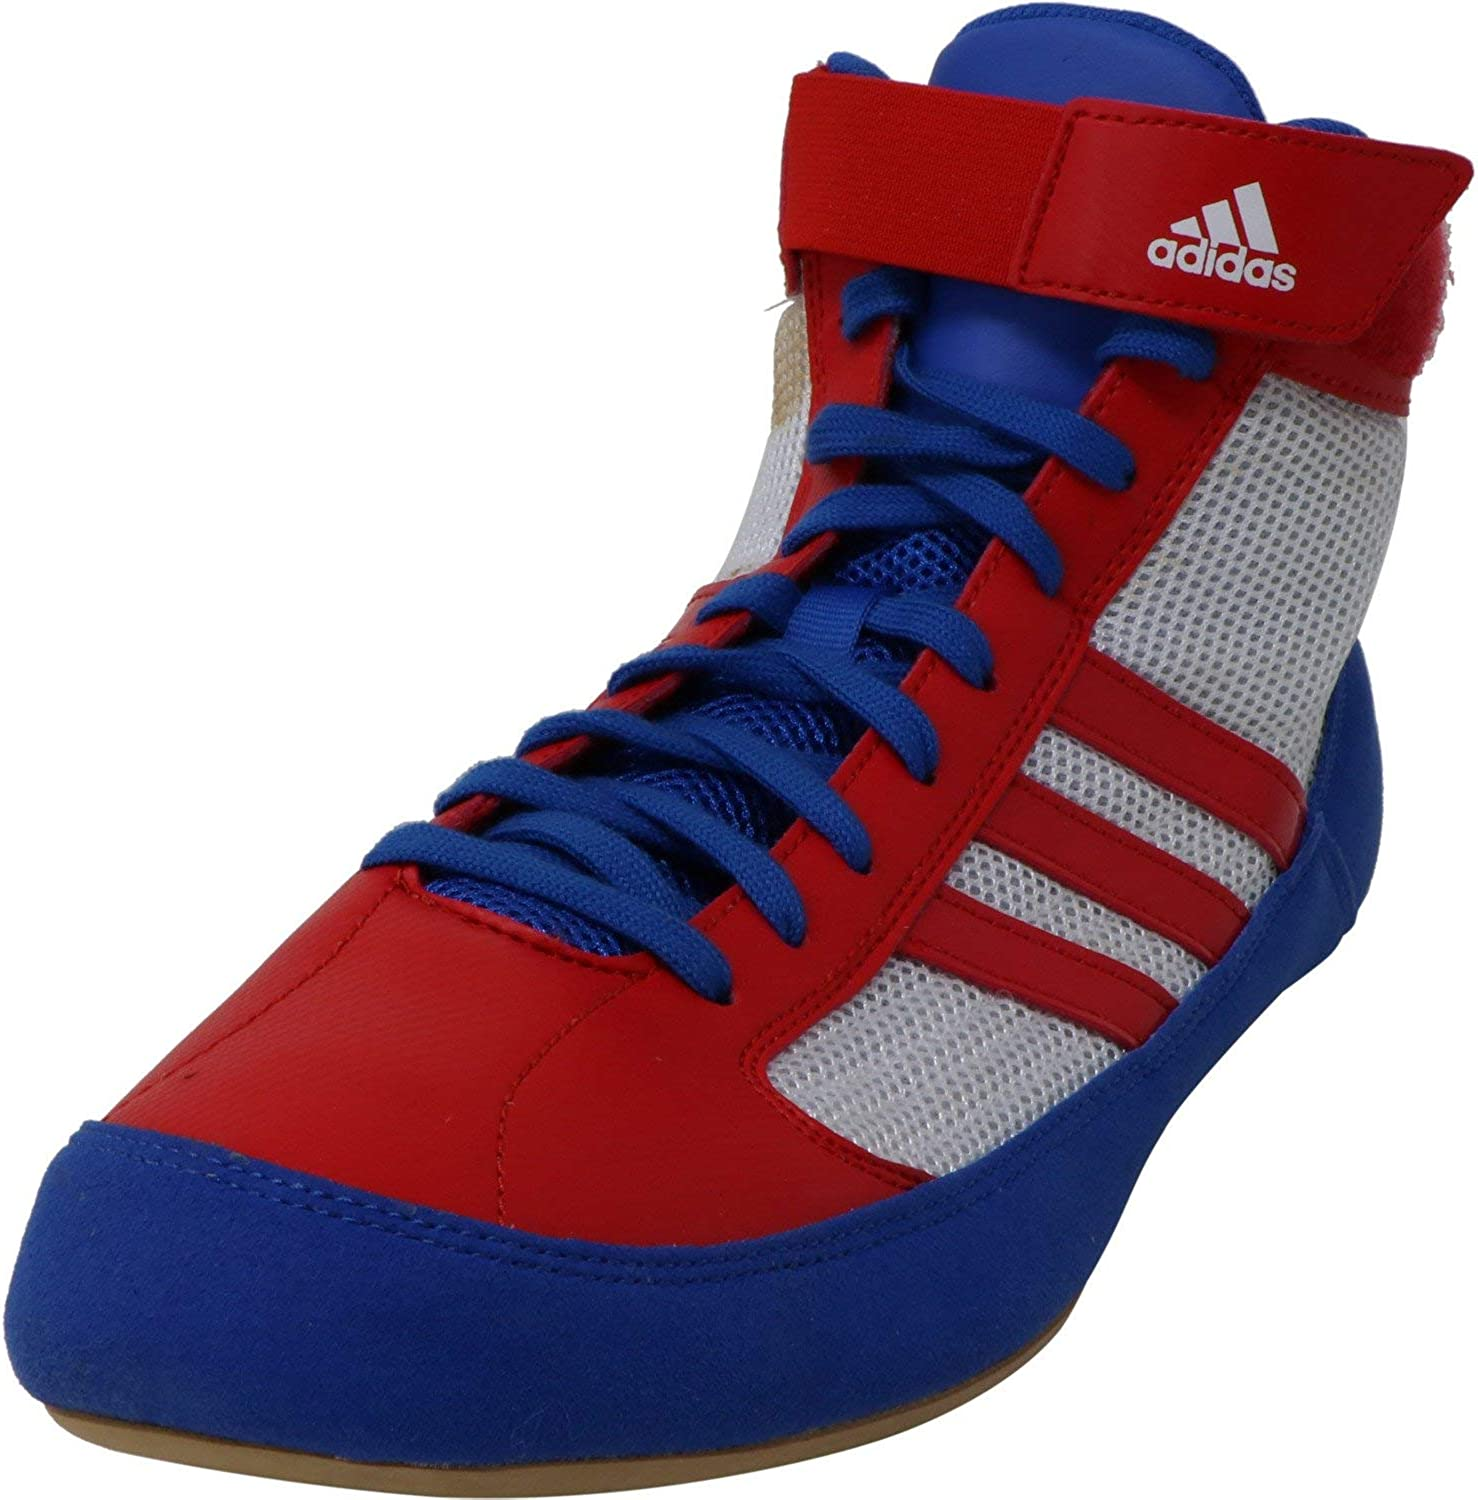 mejor lugar zapatos de separación auténtica venta caliente Adidas Hvc Laced Wrestling Shoes - 14 - Blue/red/white: Amazon.co.uk: Shoes  & Bags